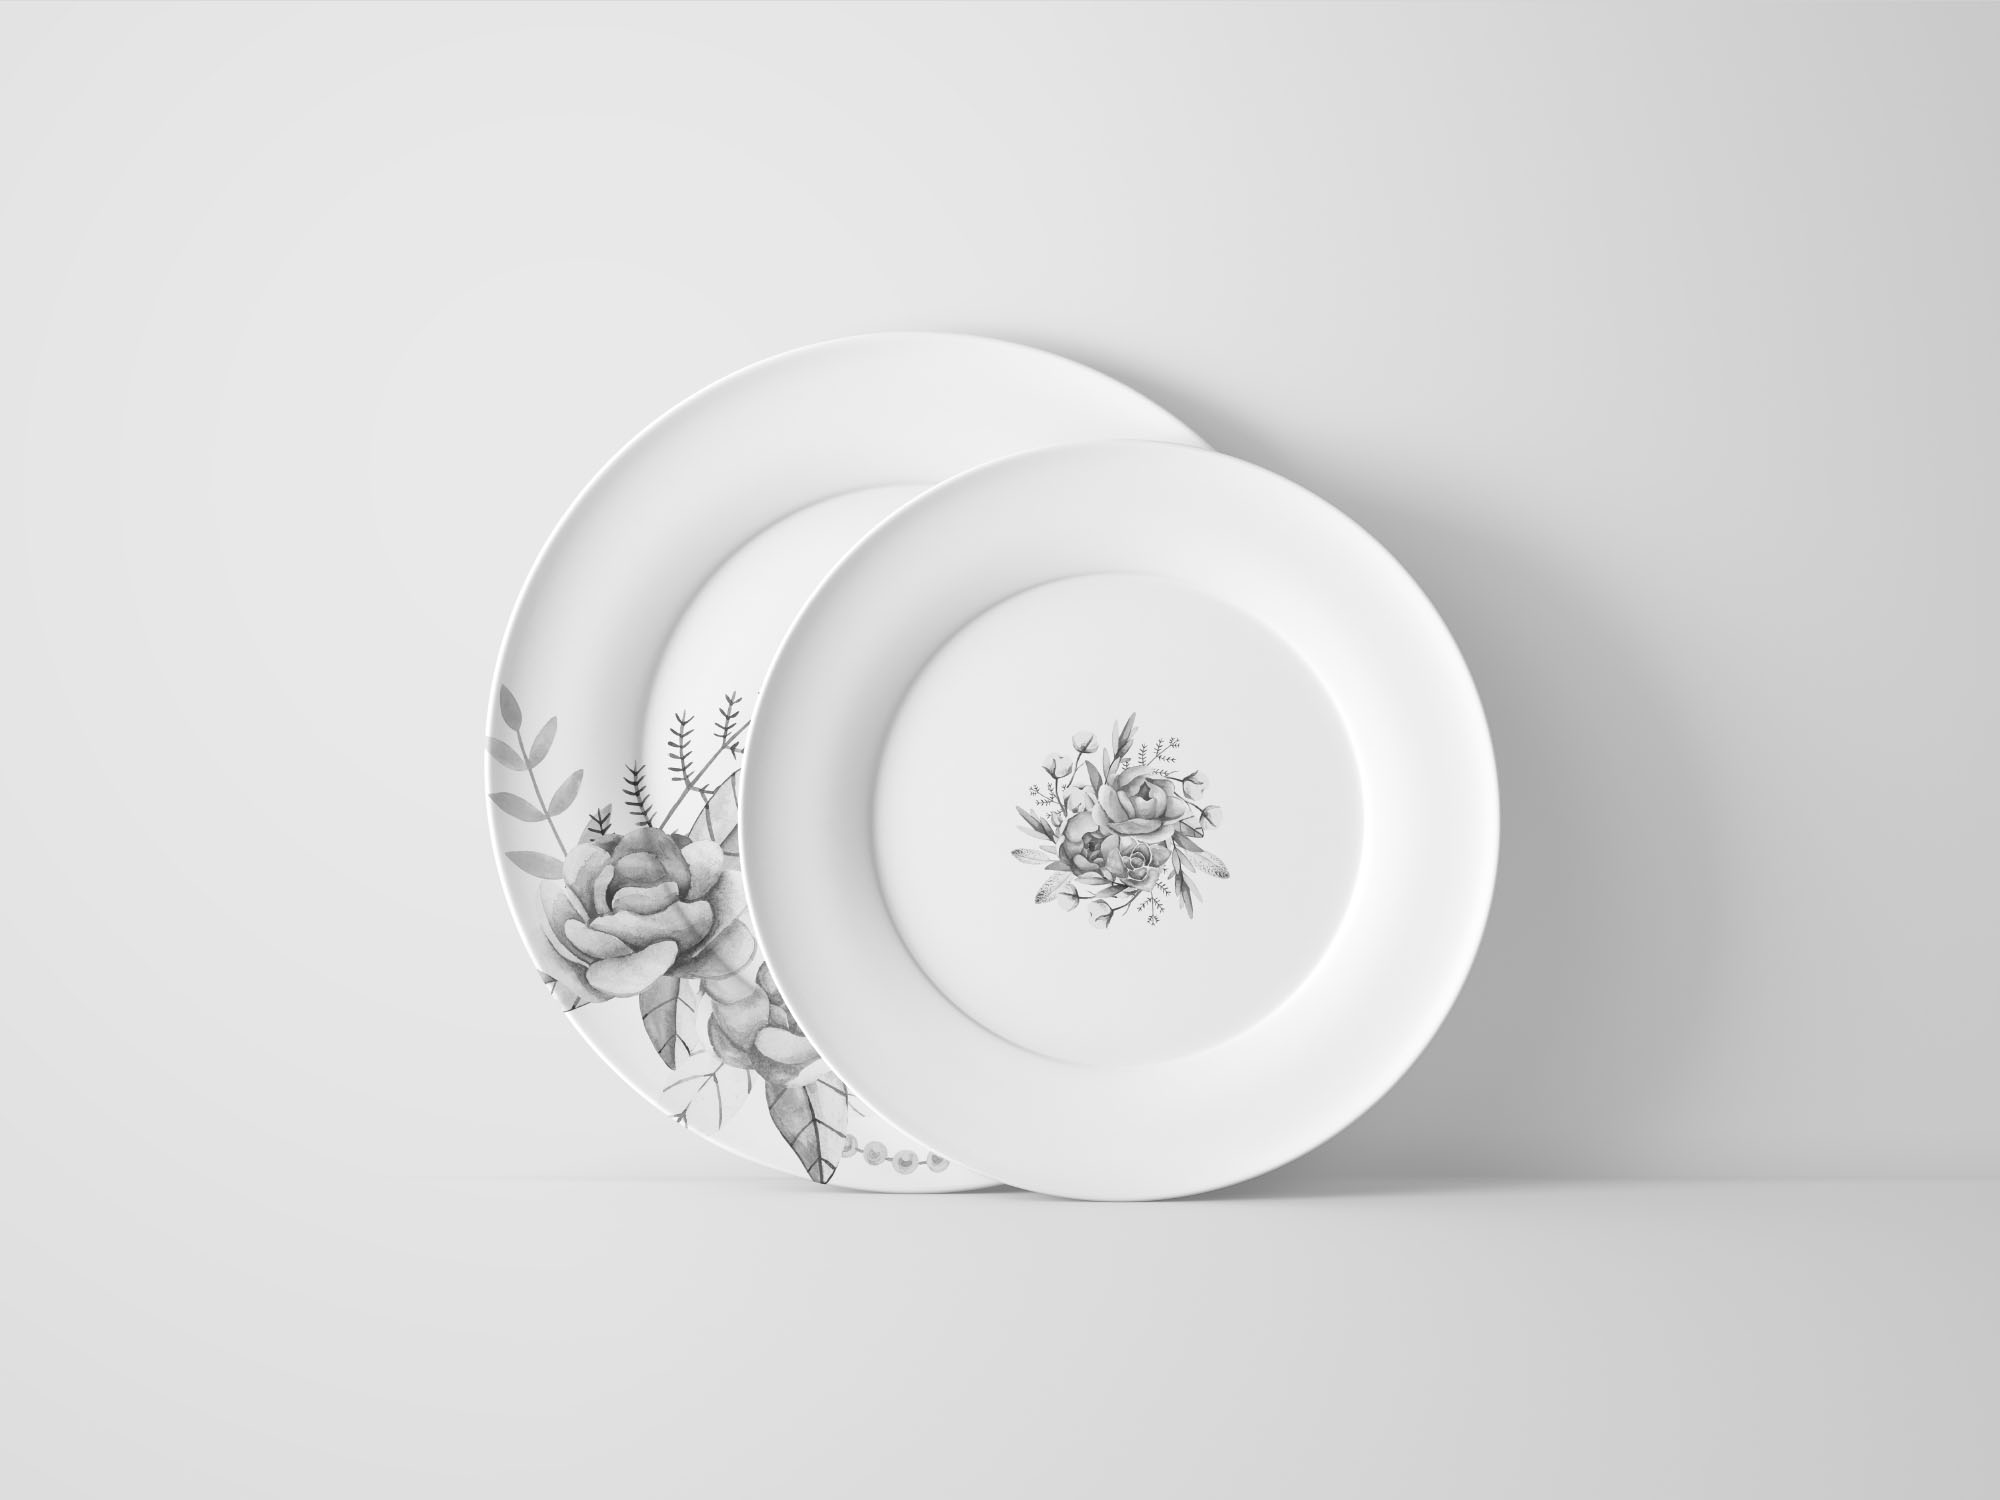 Two Plates Mockup Front View - Black & White